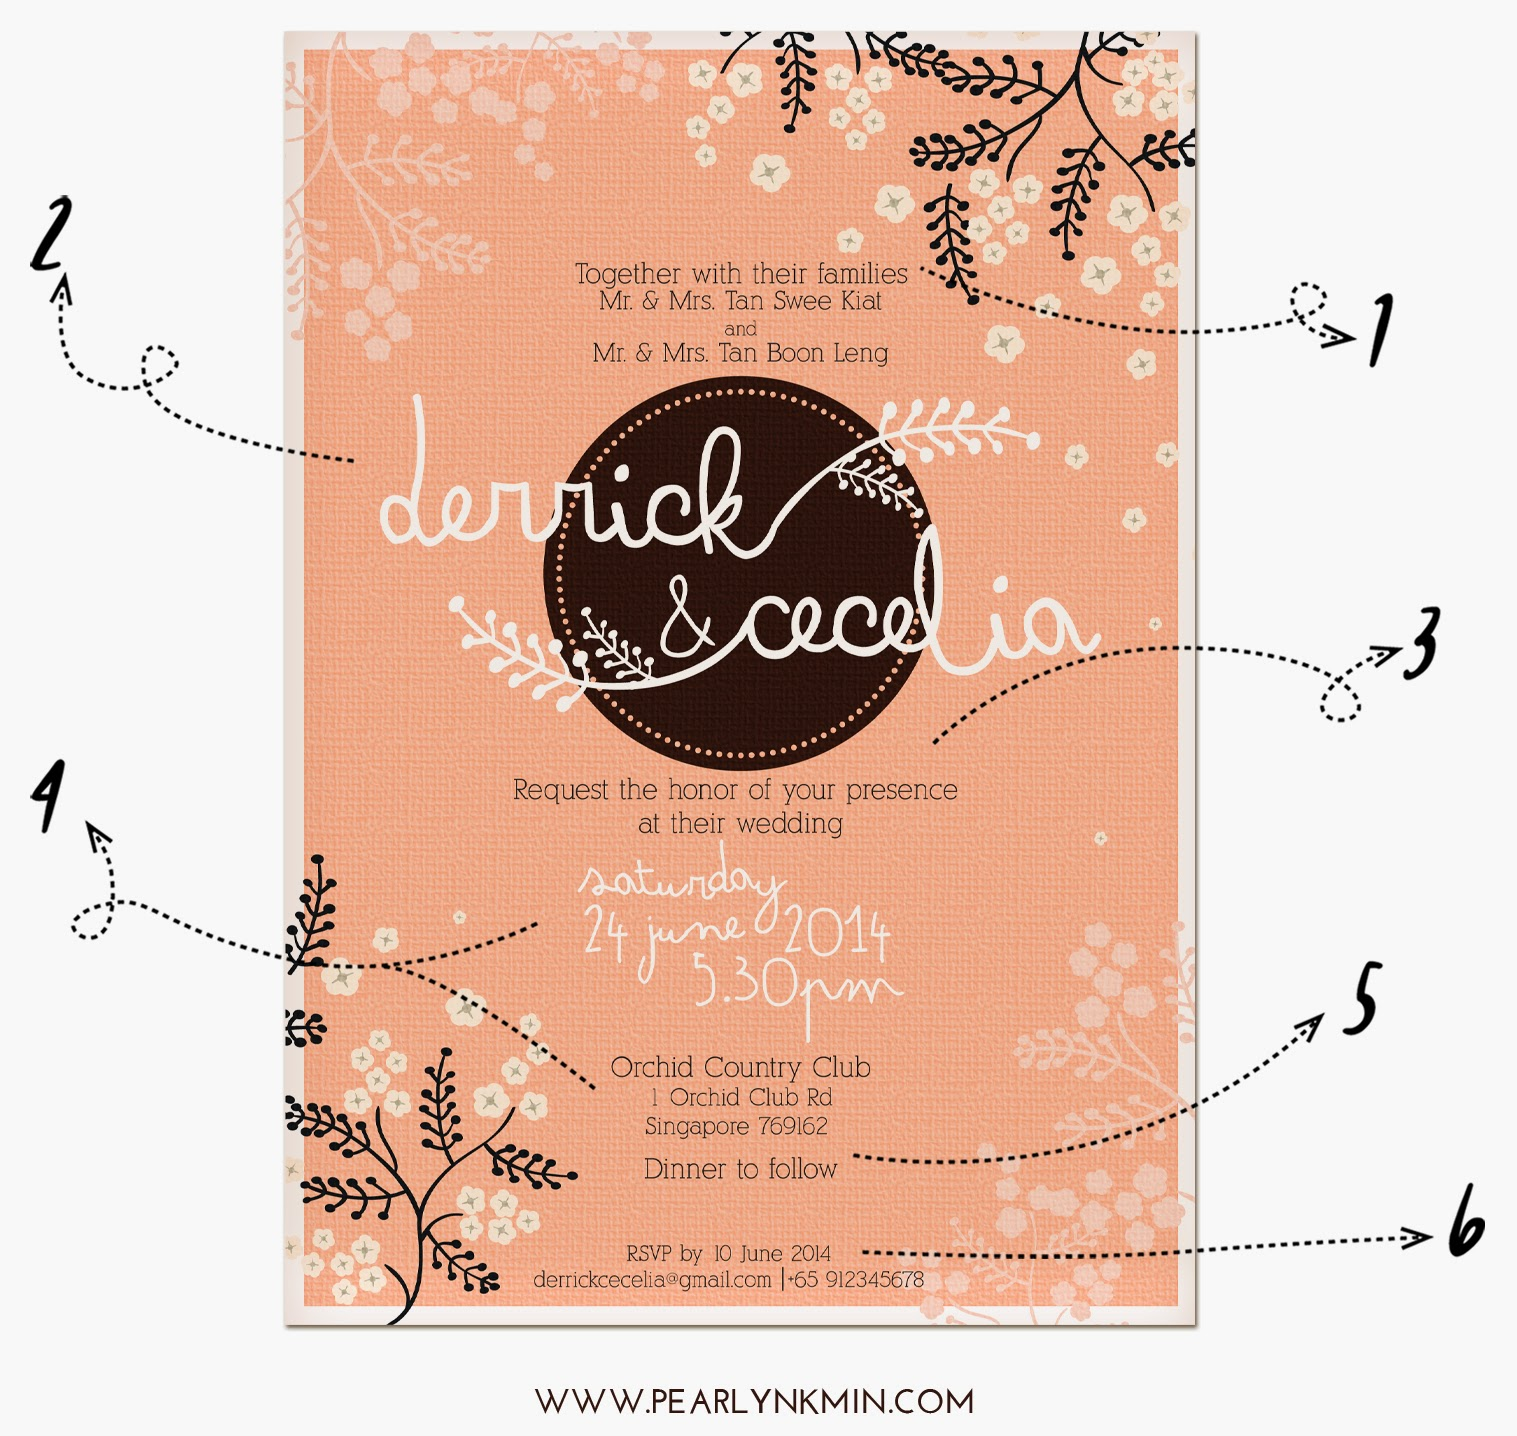 Pearlynkmin Pearlyn And Paper Wedding Invitation Etiquette